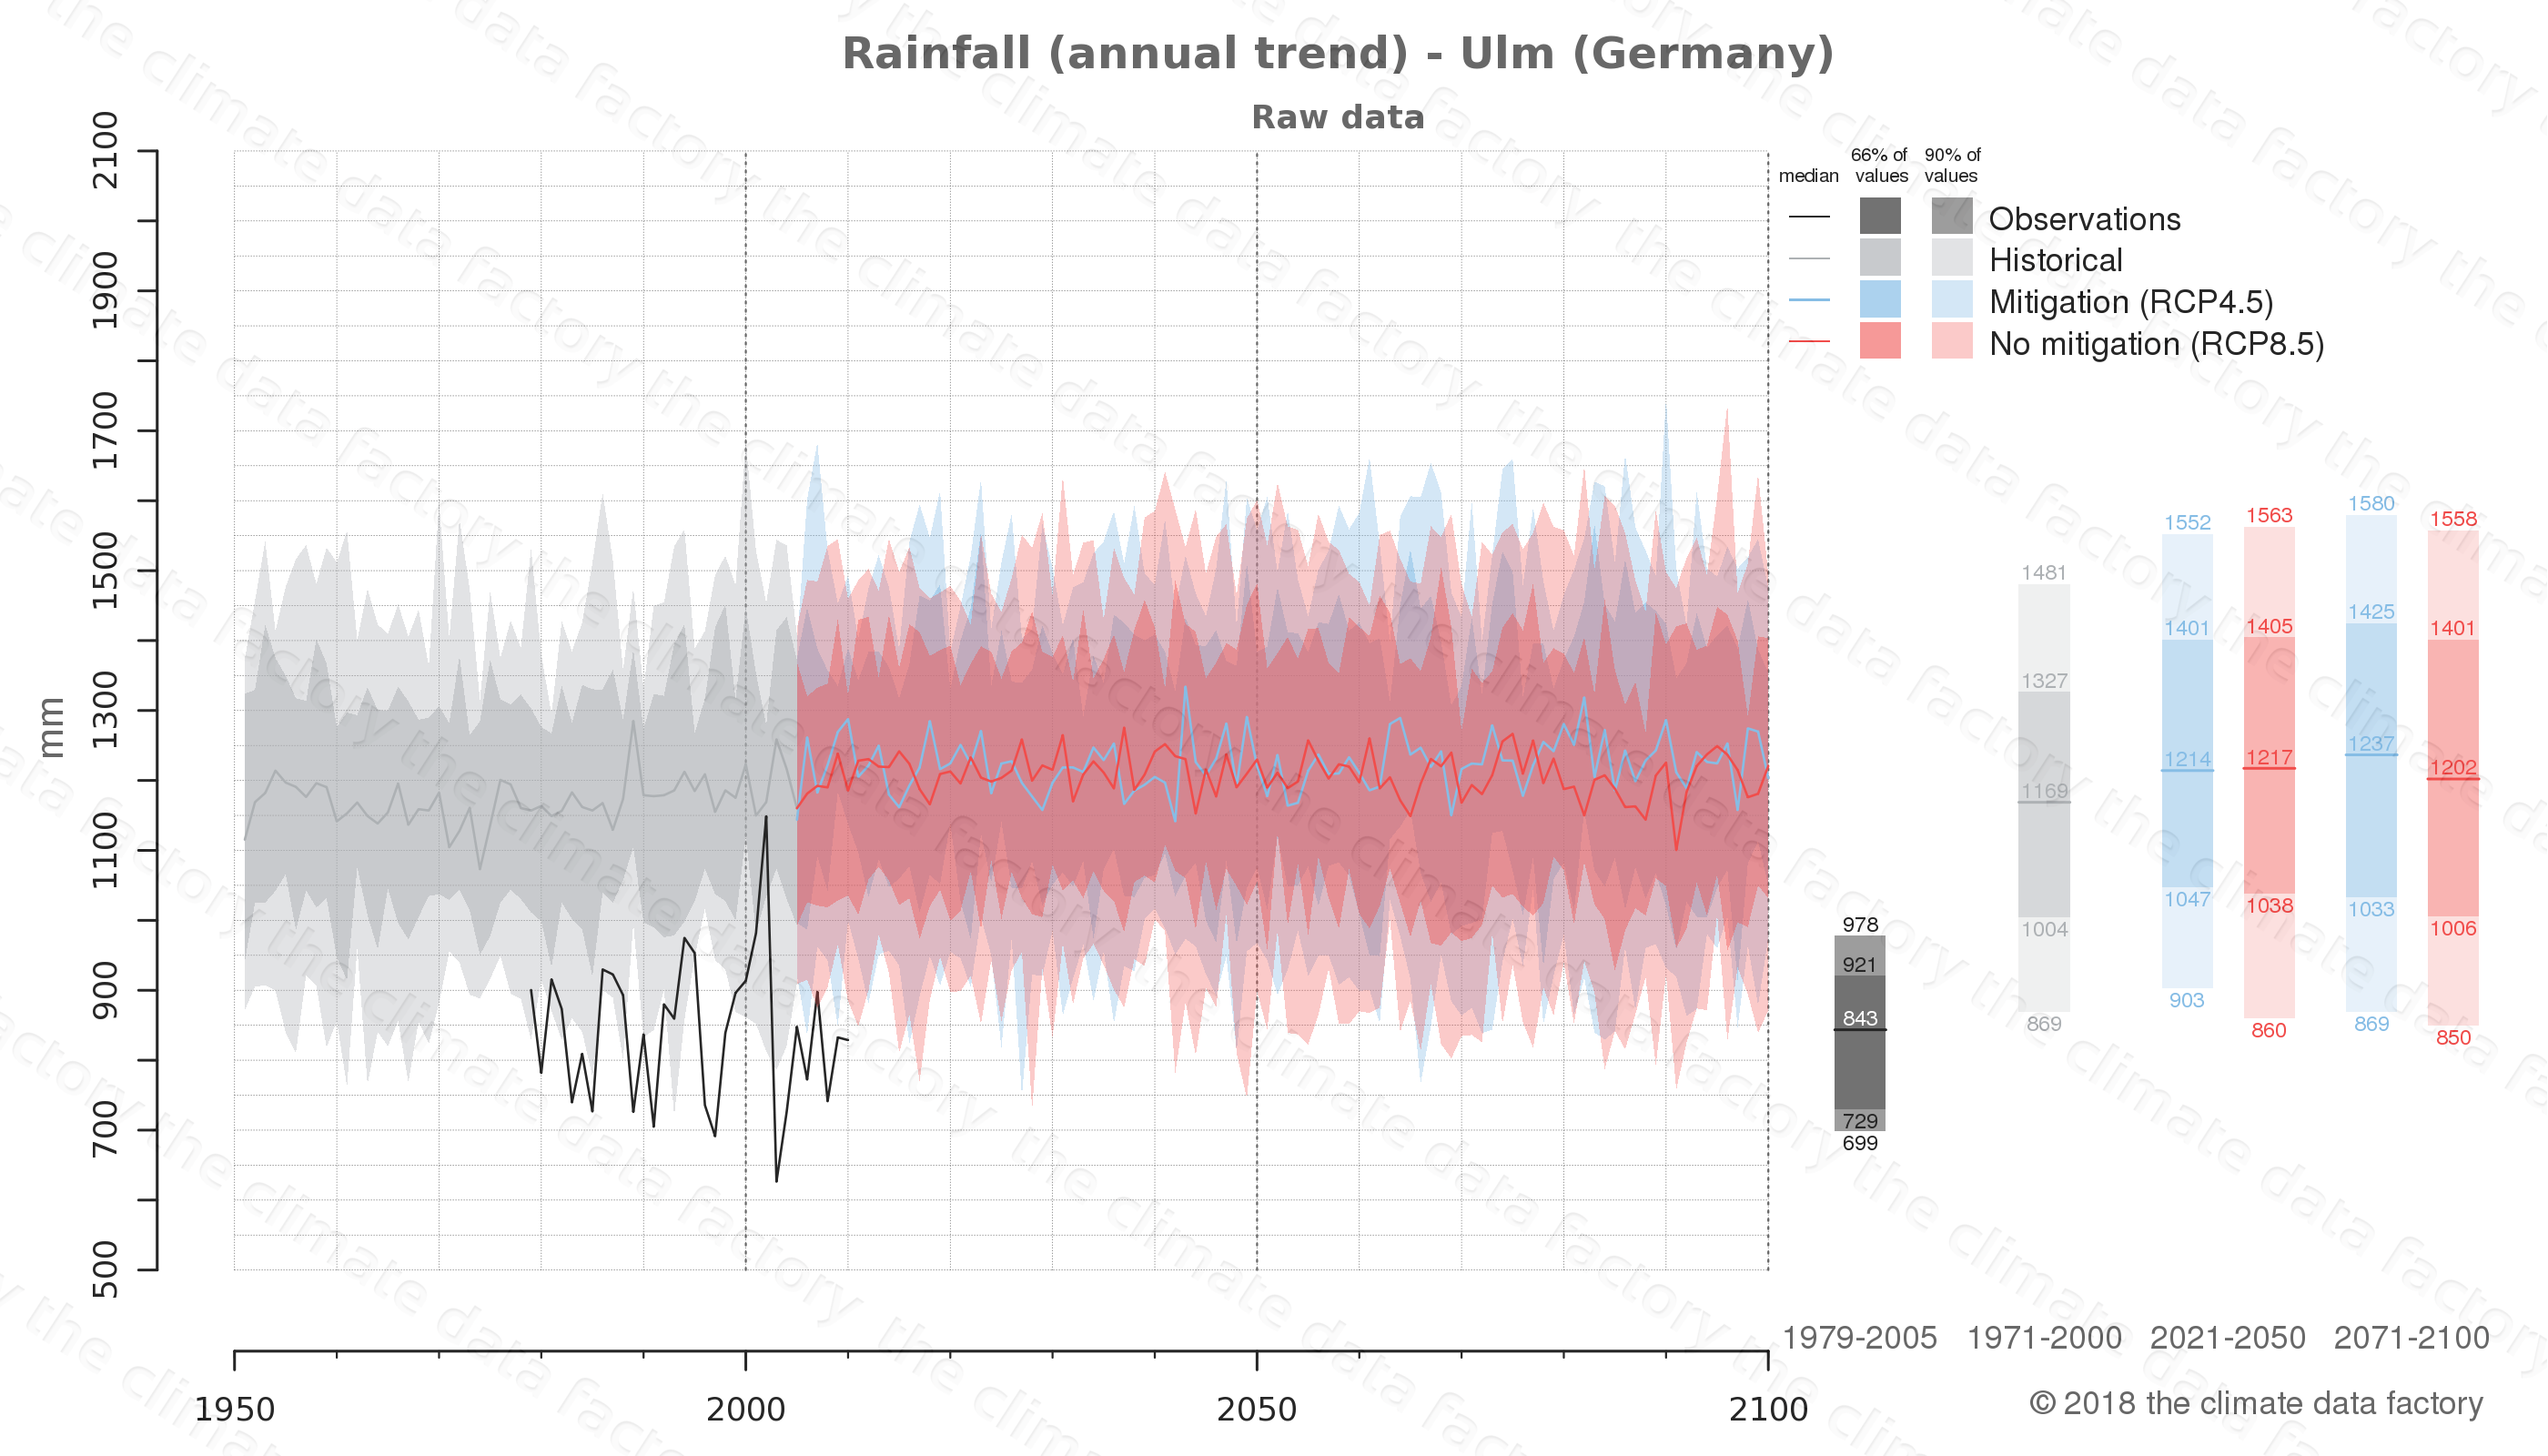 climate change data policy adaptation climate graph city data rainfall ulm germany